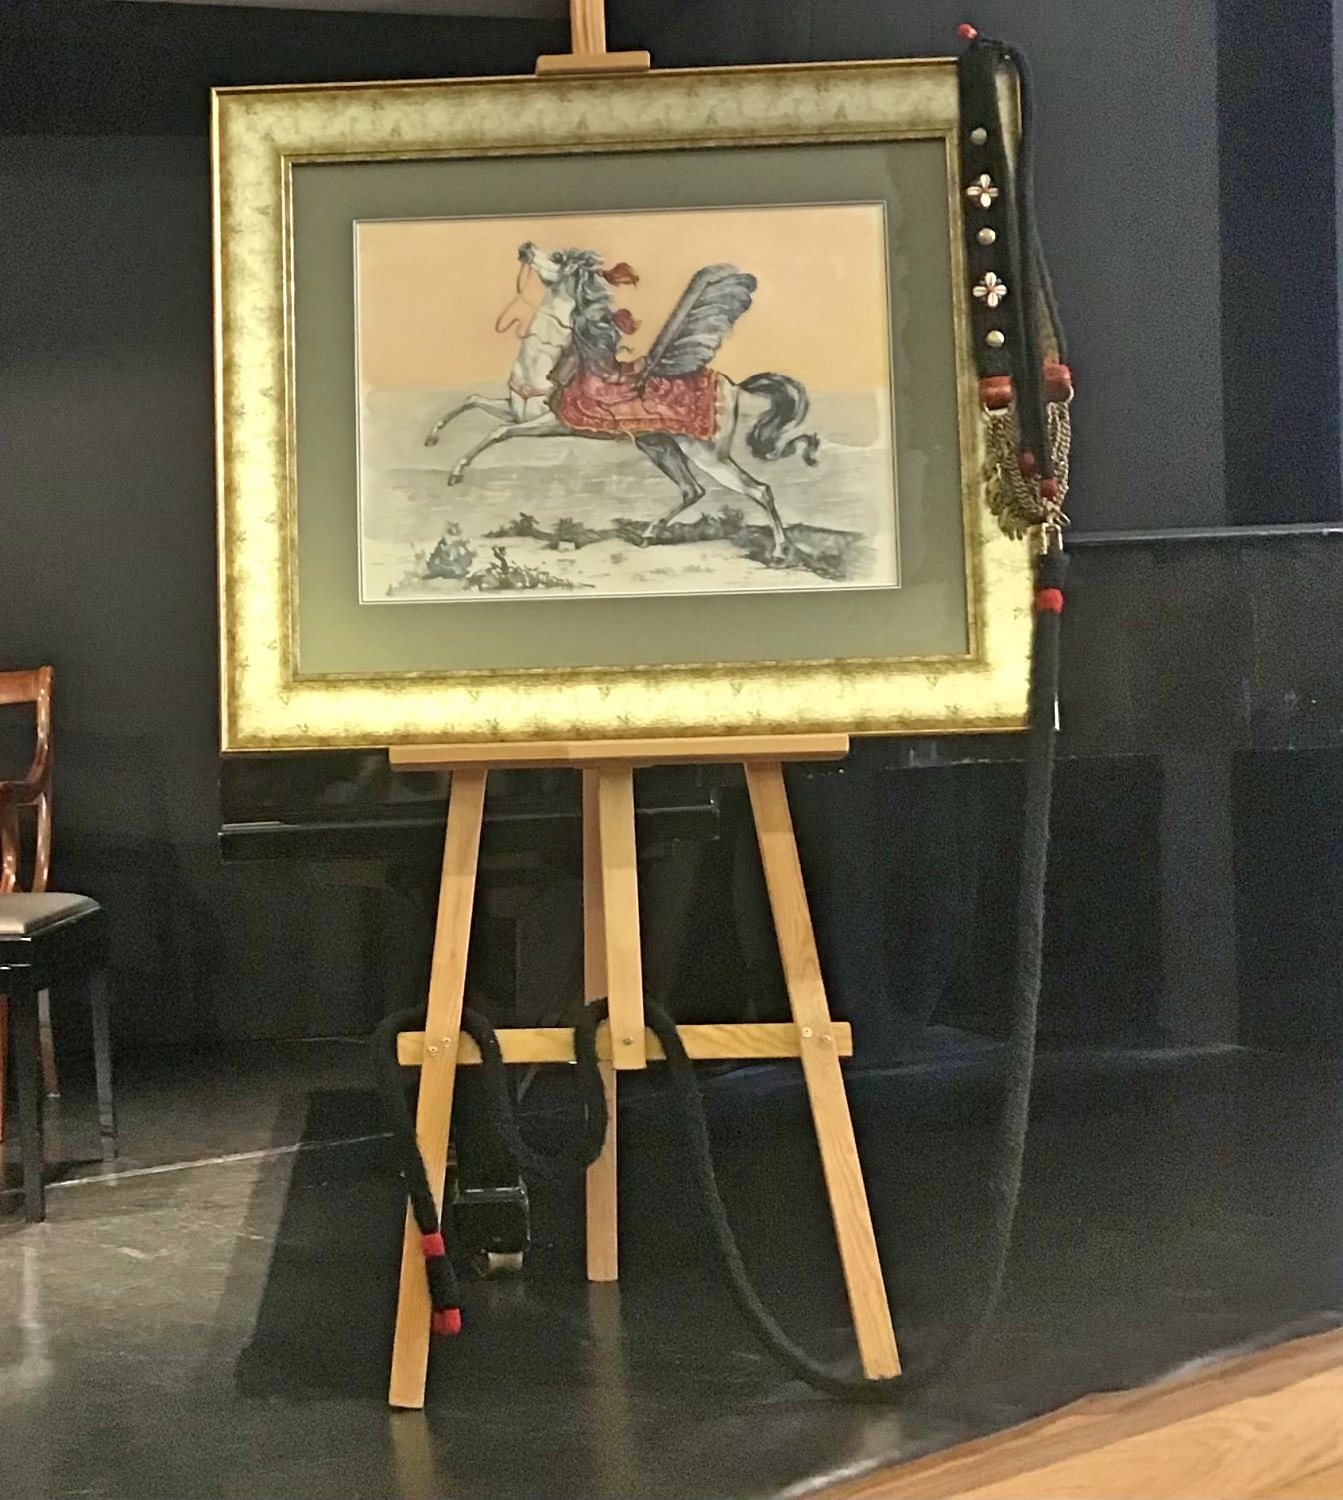 A painting by the painter Michał Siemiński with the image of a Hussar horse, based  on a drawing by Georg Eimart from 1678, photo: Hanna Sztuka